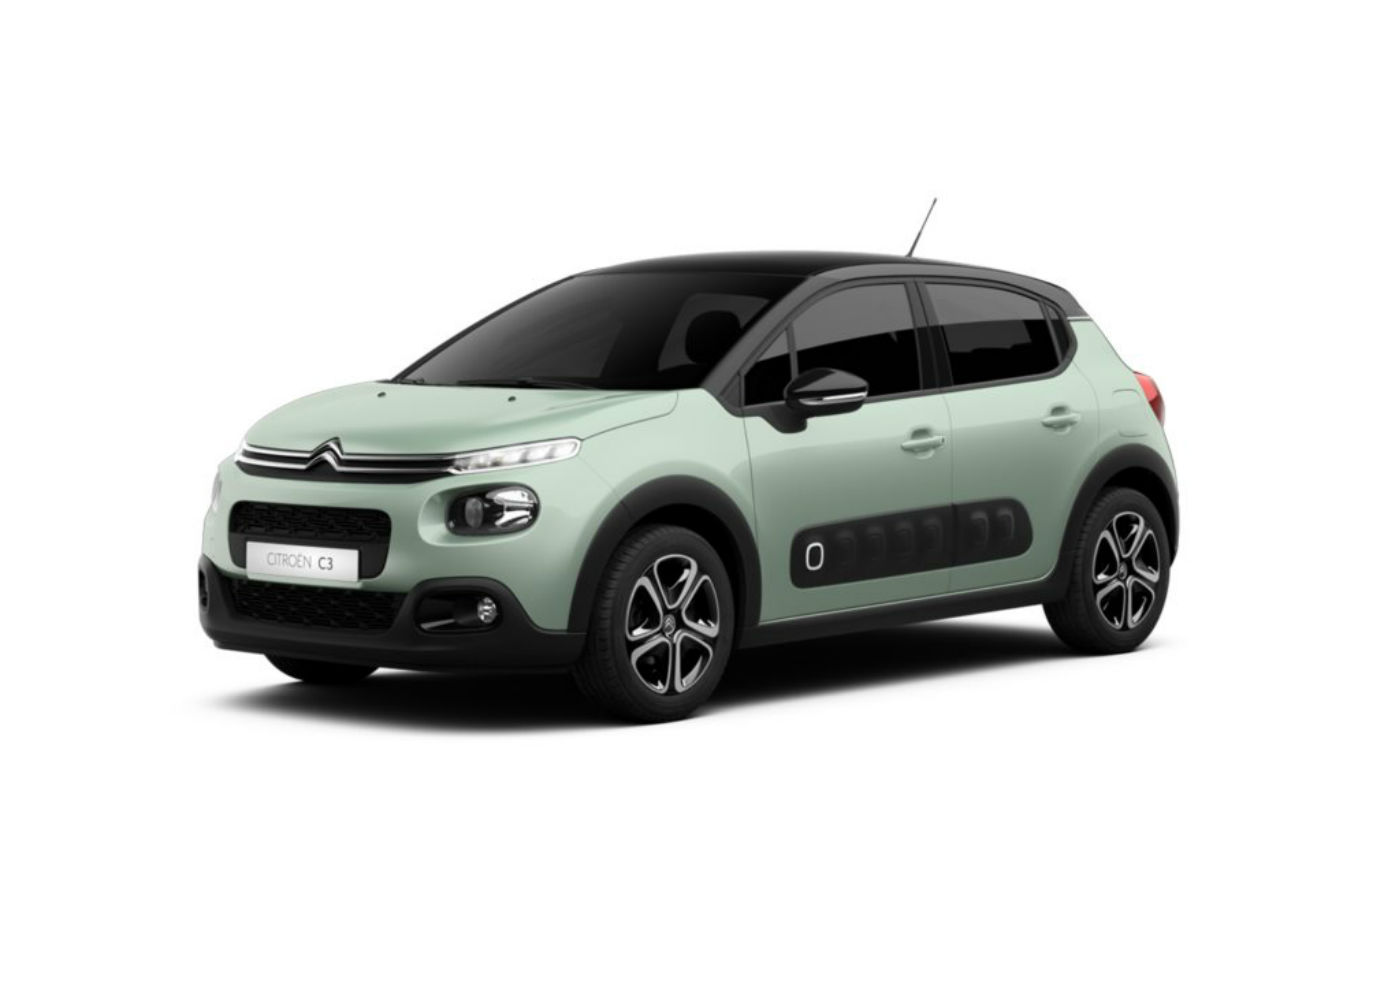 citroen c3 puretech 82 shine almond green km0 a soli 13400 su miacar lewyf. Black Bedroom Furniture Sets. Home Design Ideas